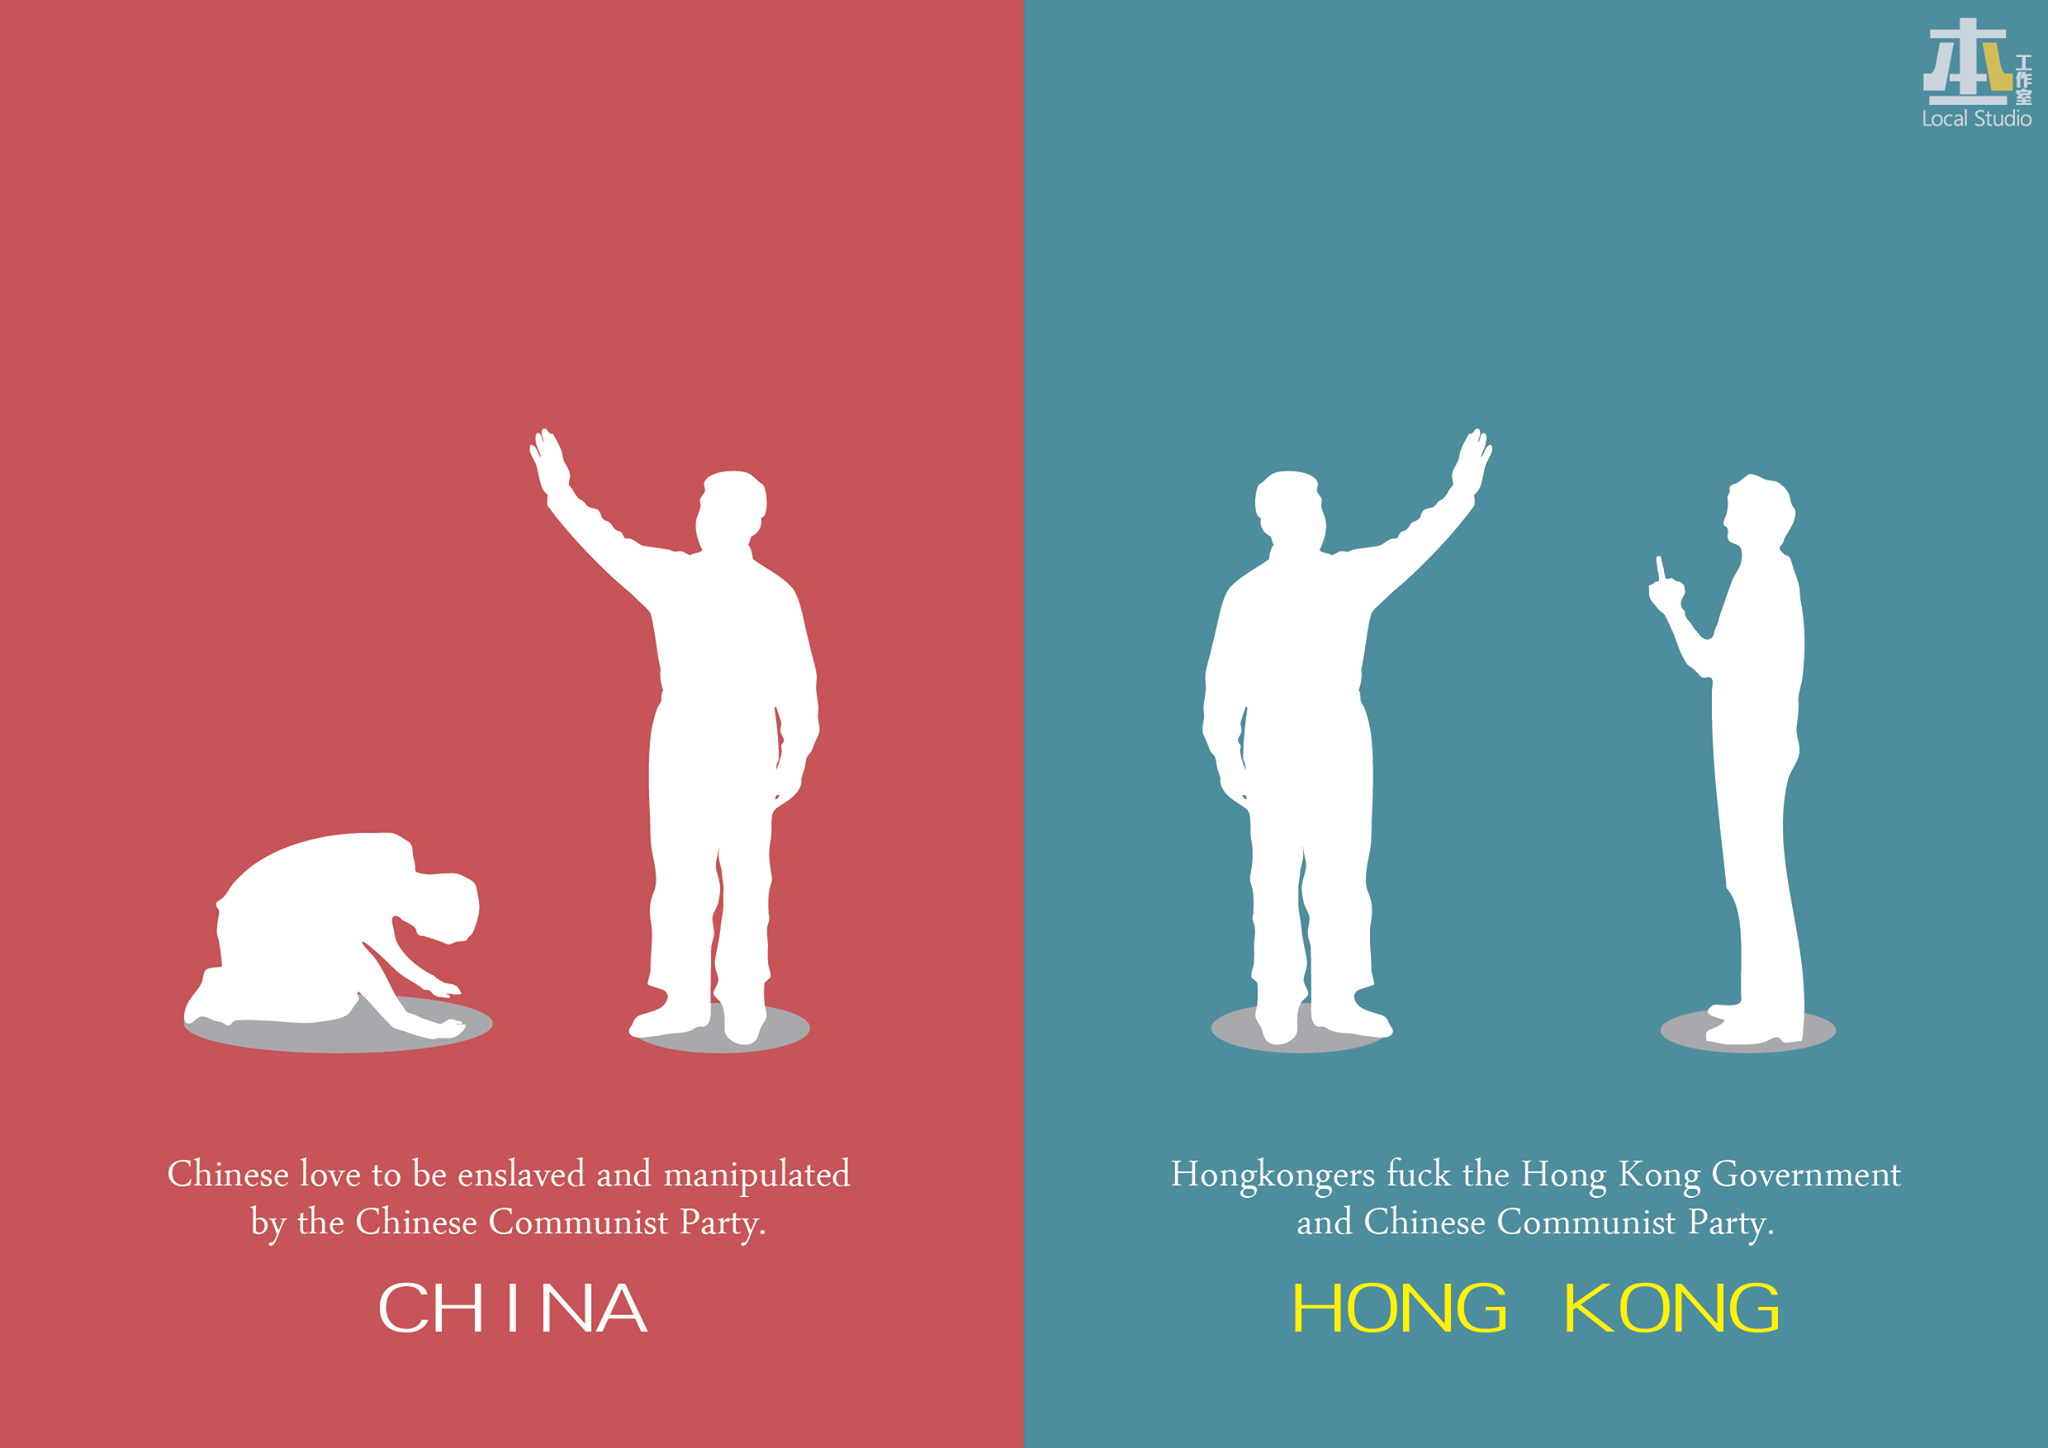 these illustrations show how different hong kong thinks it is from